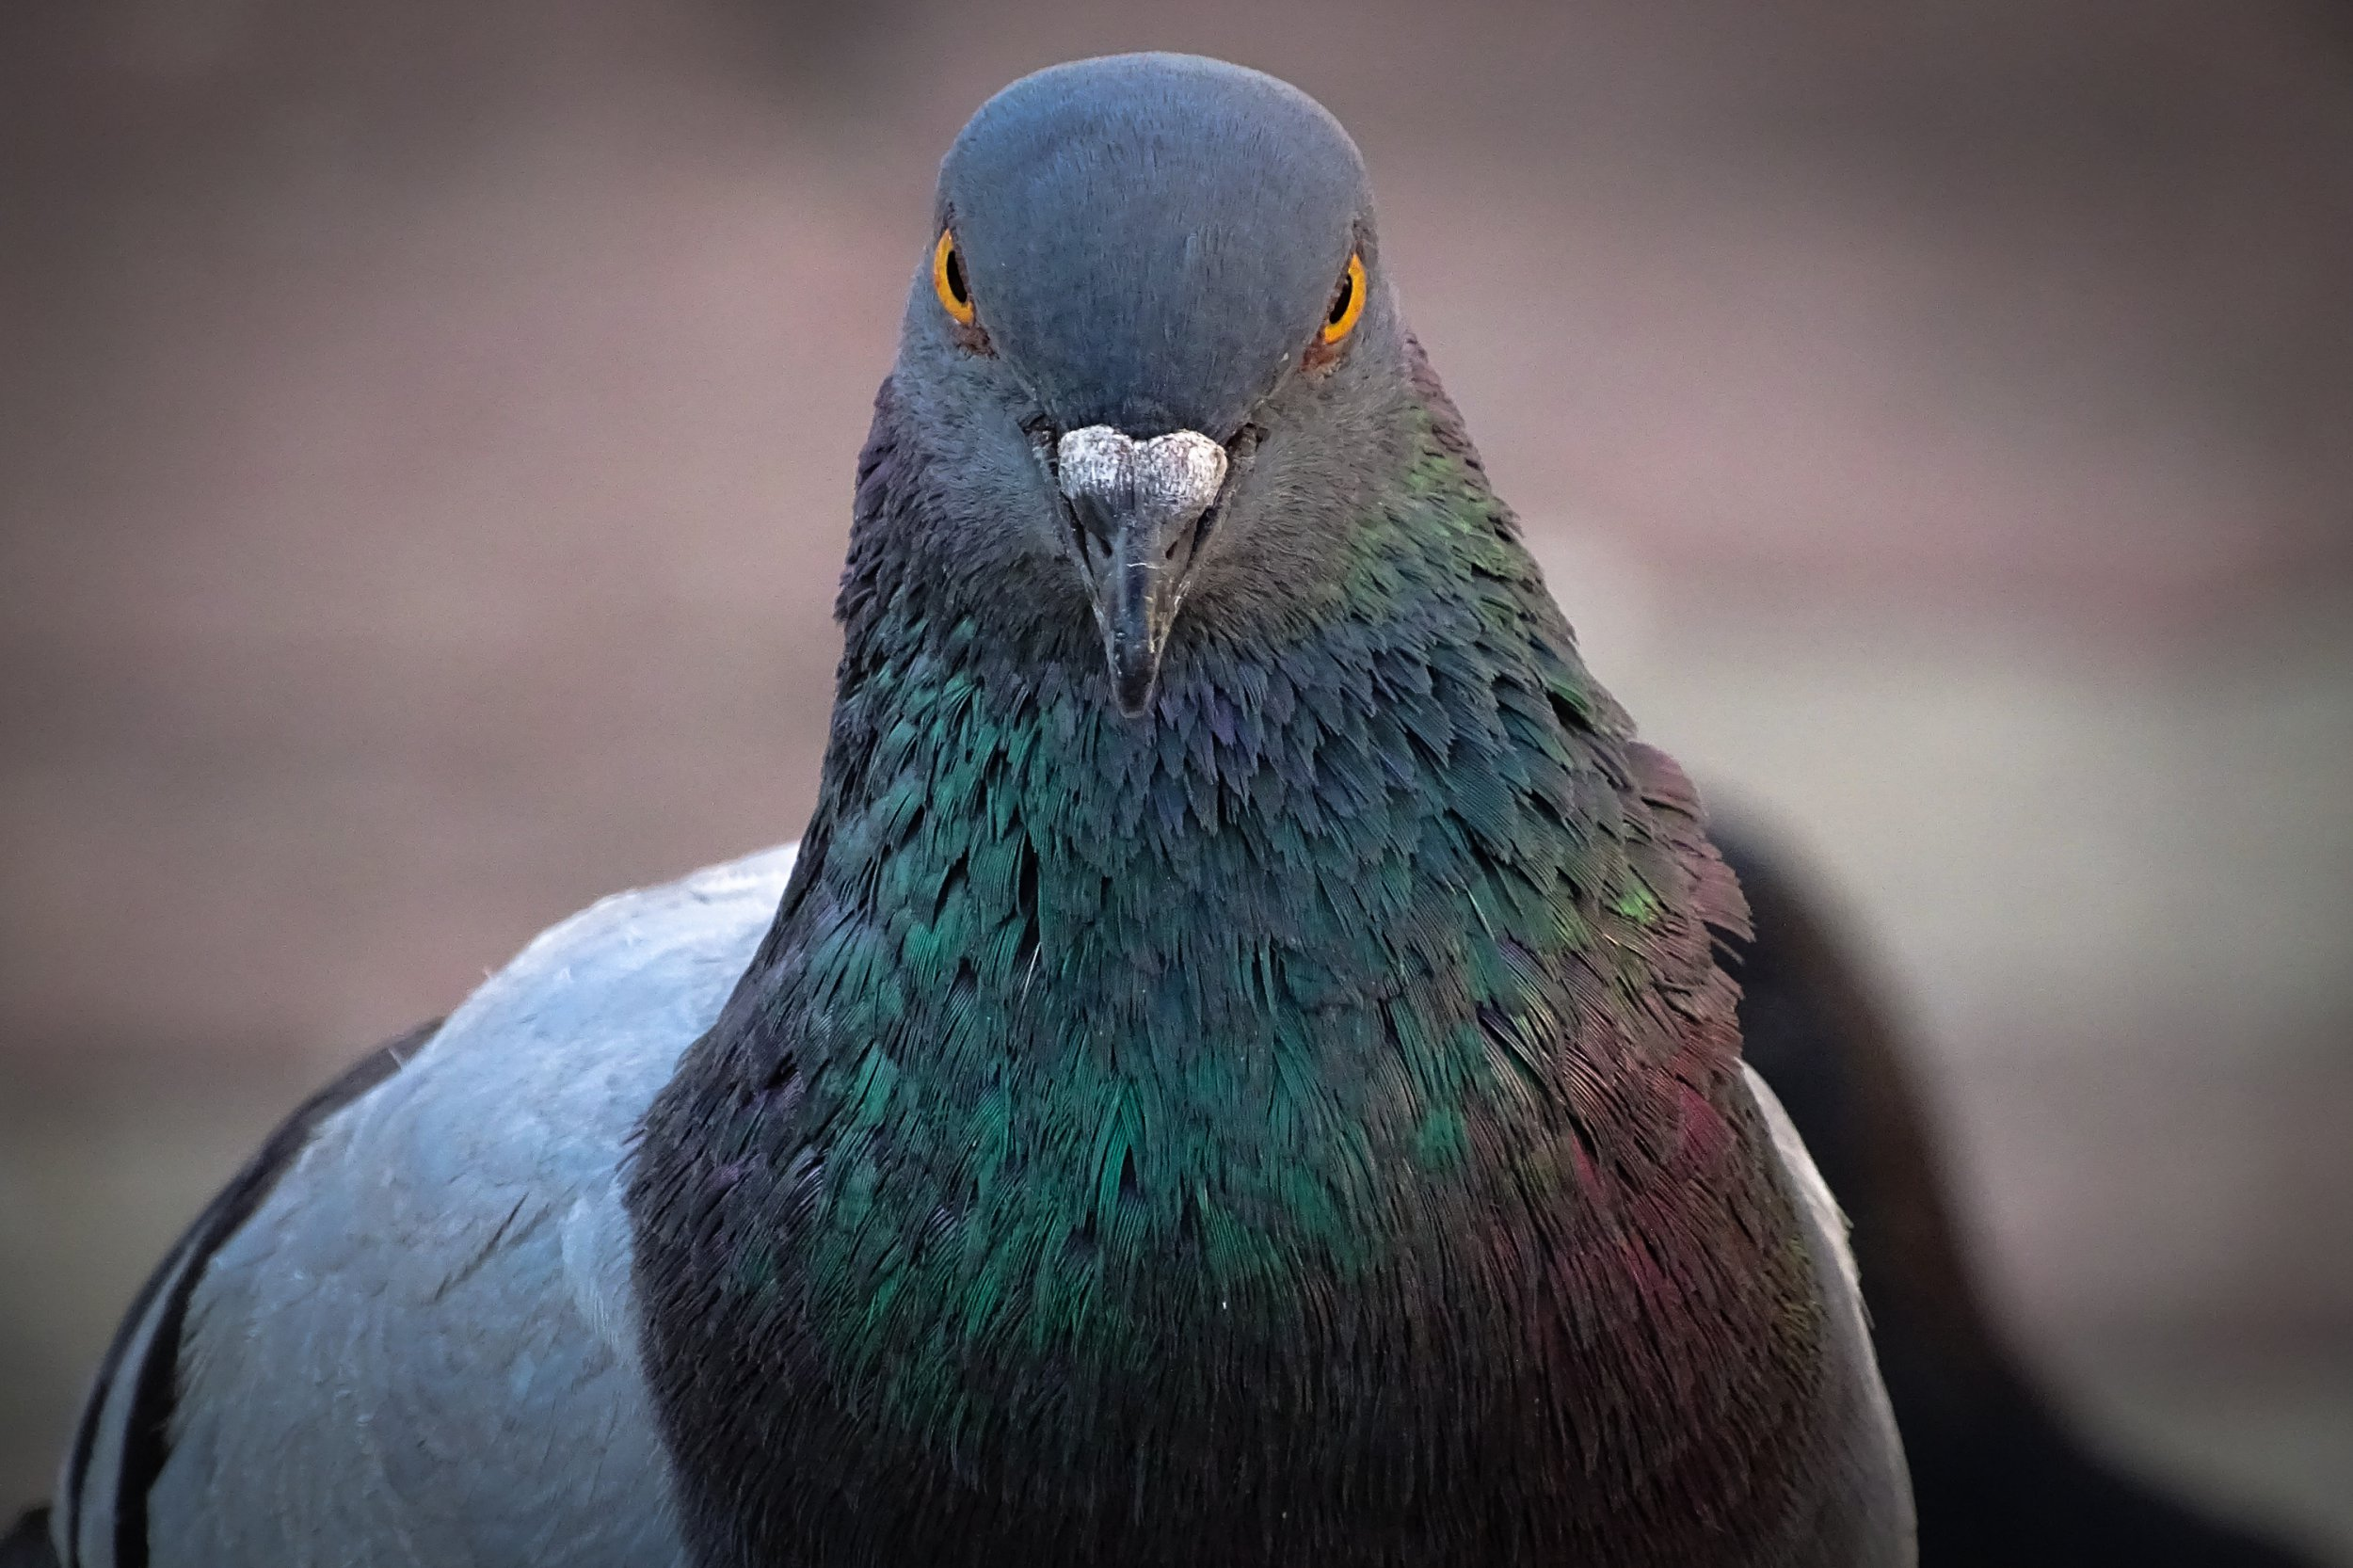 Front perspective of a face of Rock Pigeon face to face.Rock Pigeons throng streets and open squares, vital on rejected food and offerings of birdseed.; Shutterstock ID 1069354133; Purchase Order: -